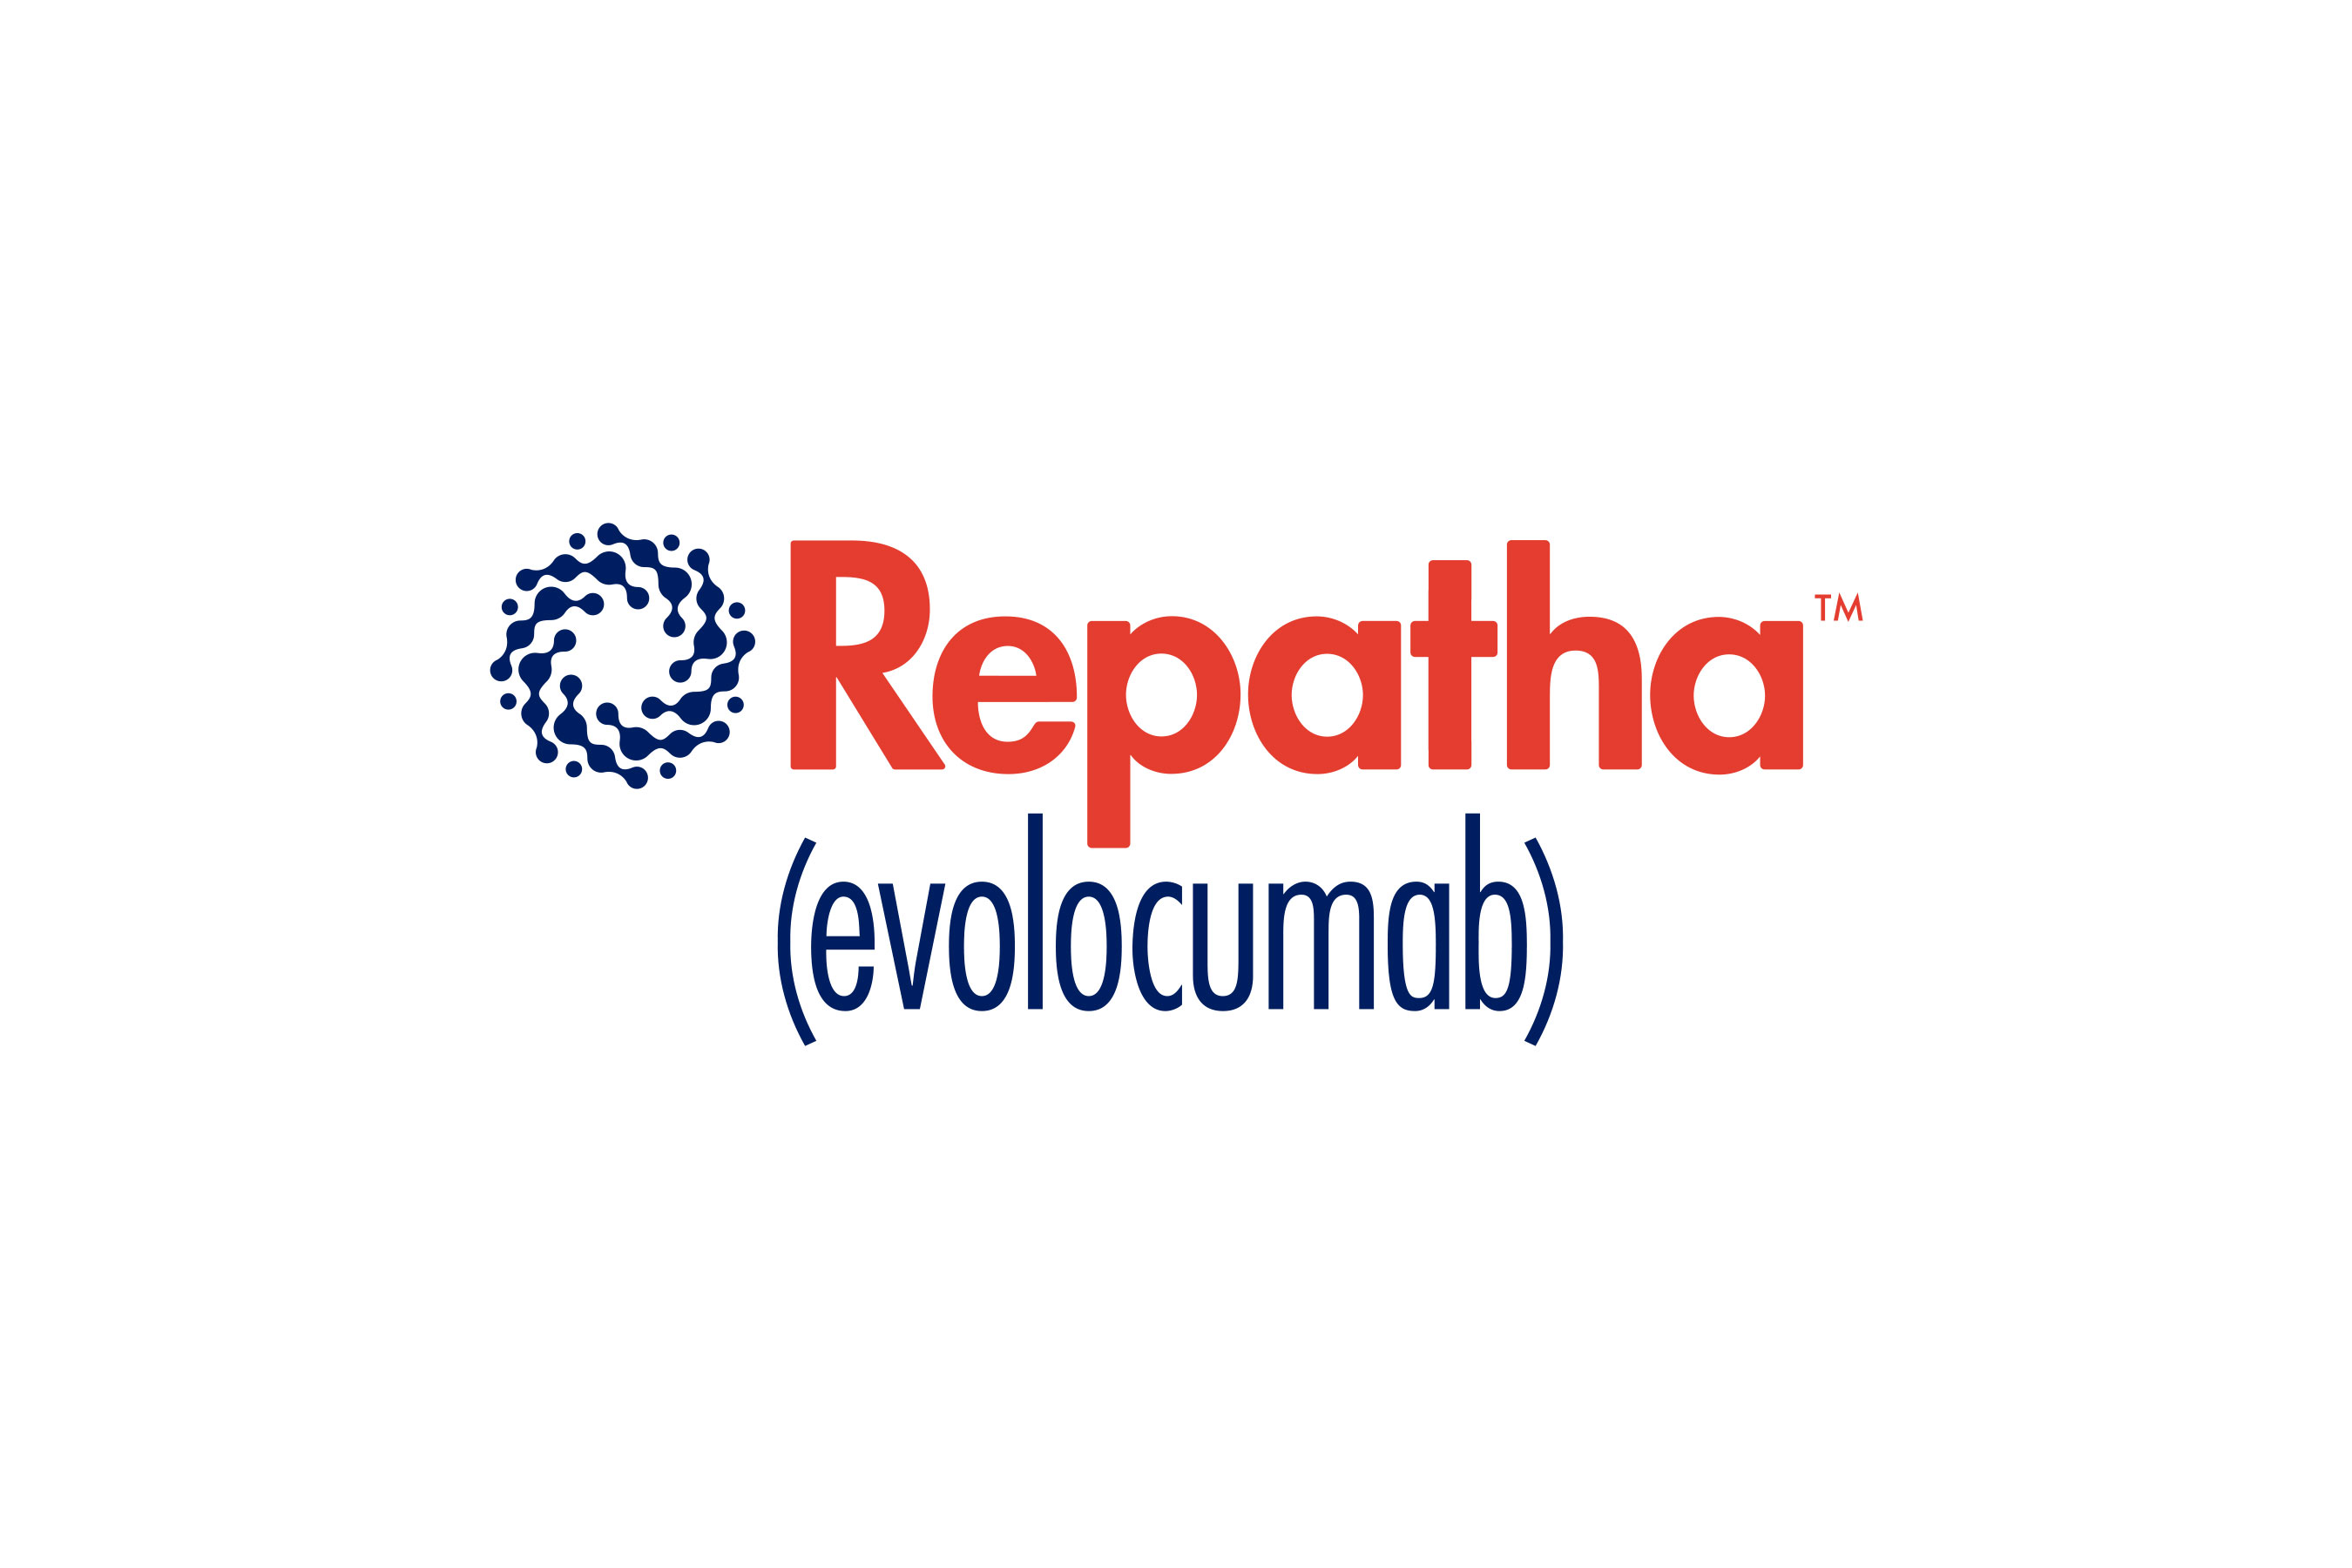 USFDA approves Repatha to treat certain patients with high cholesterol